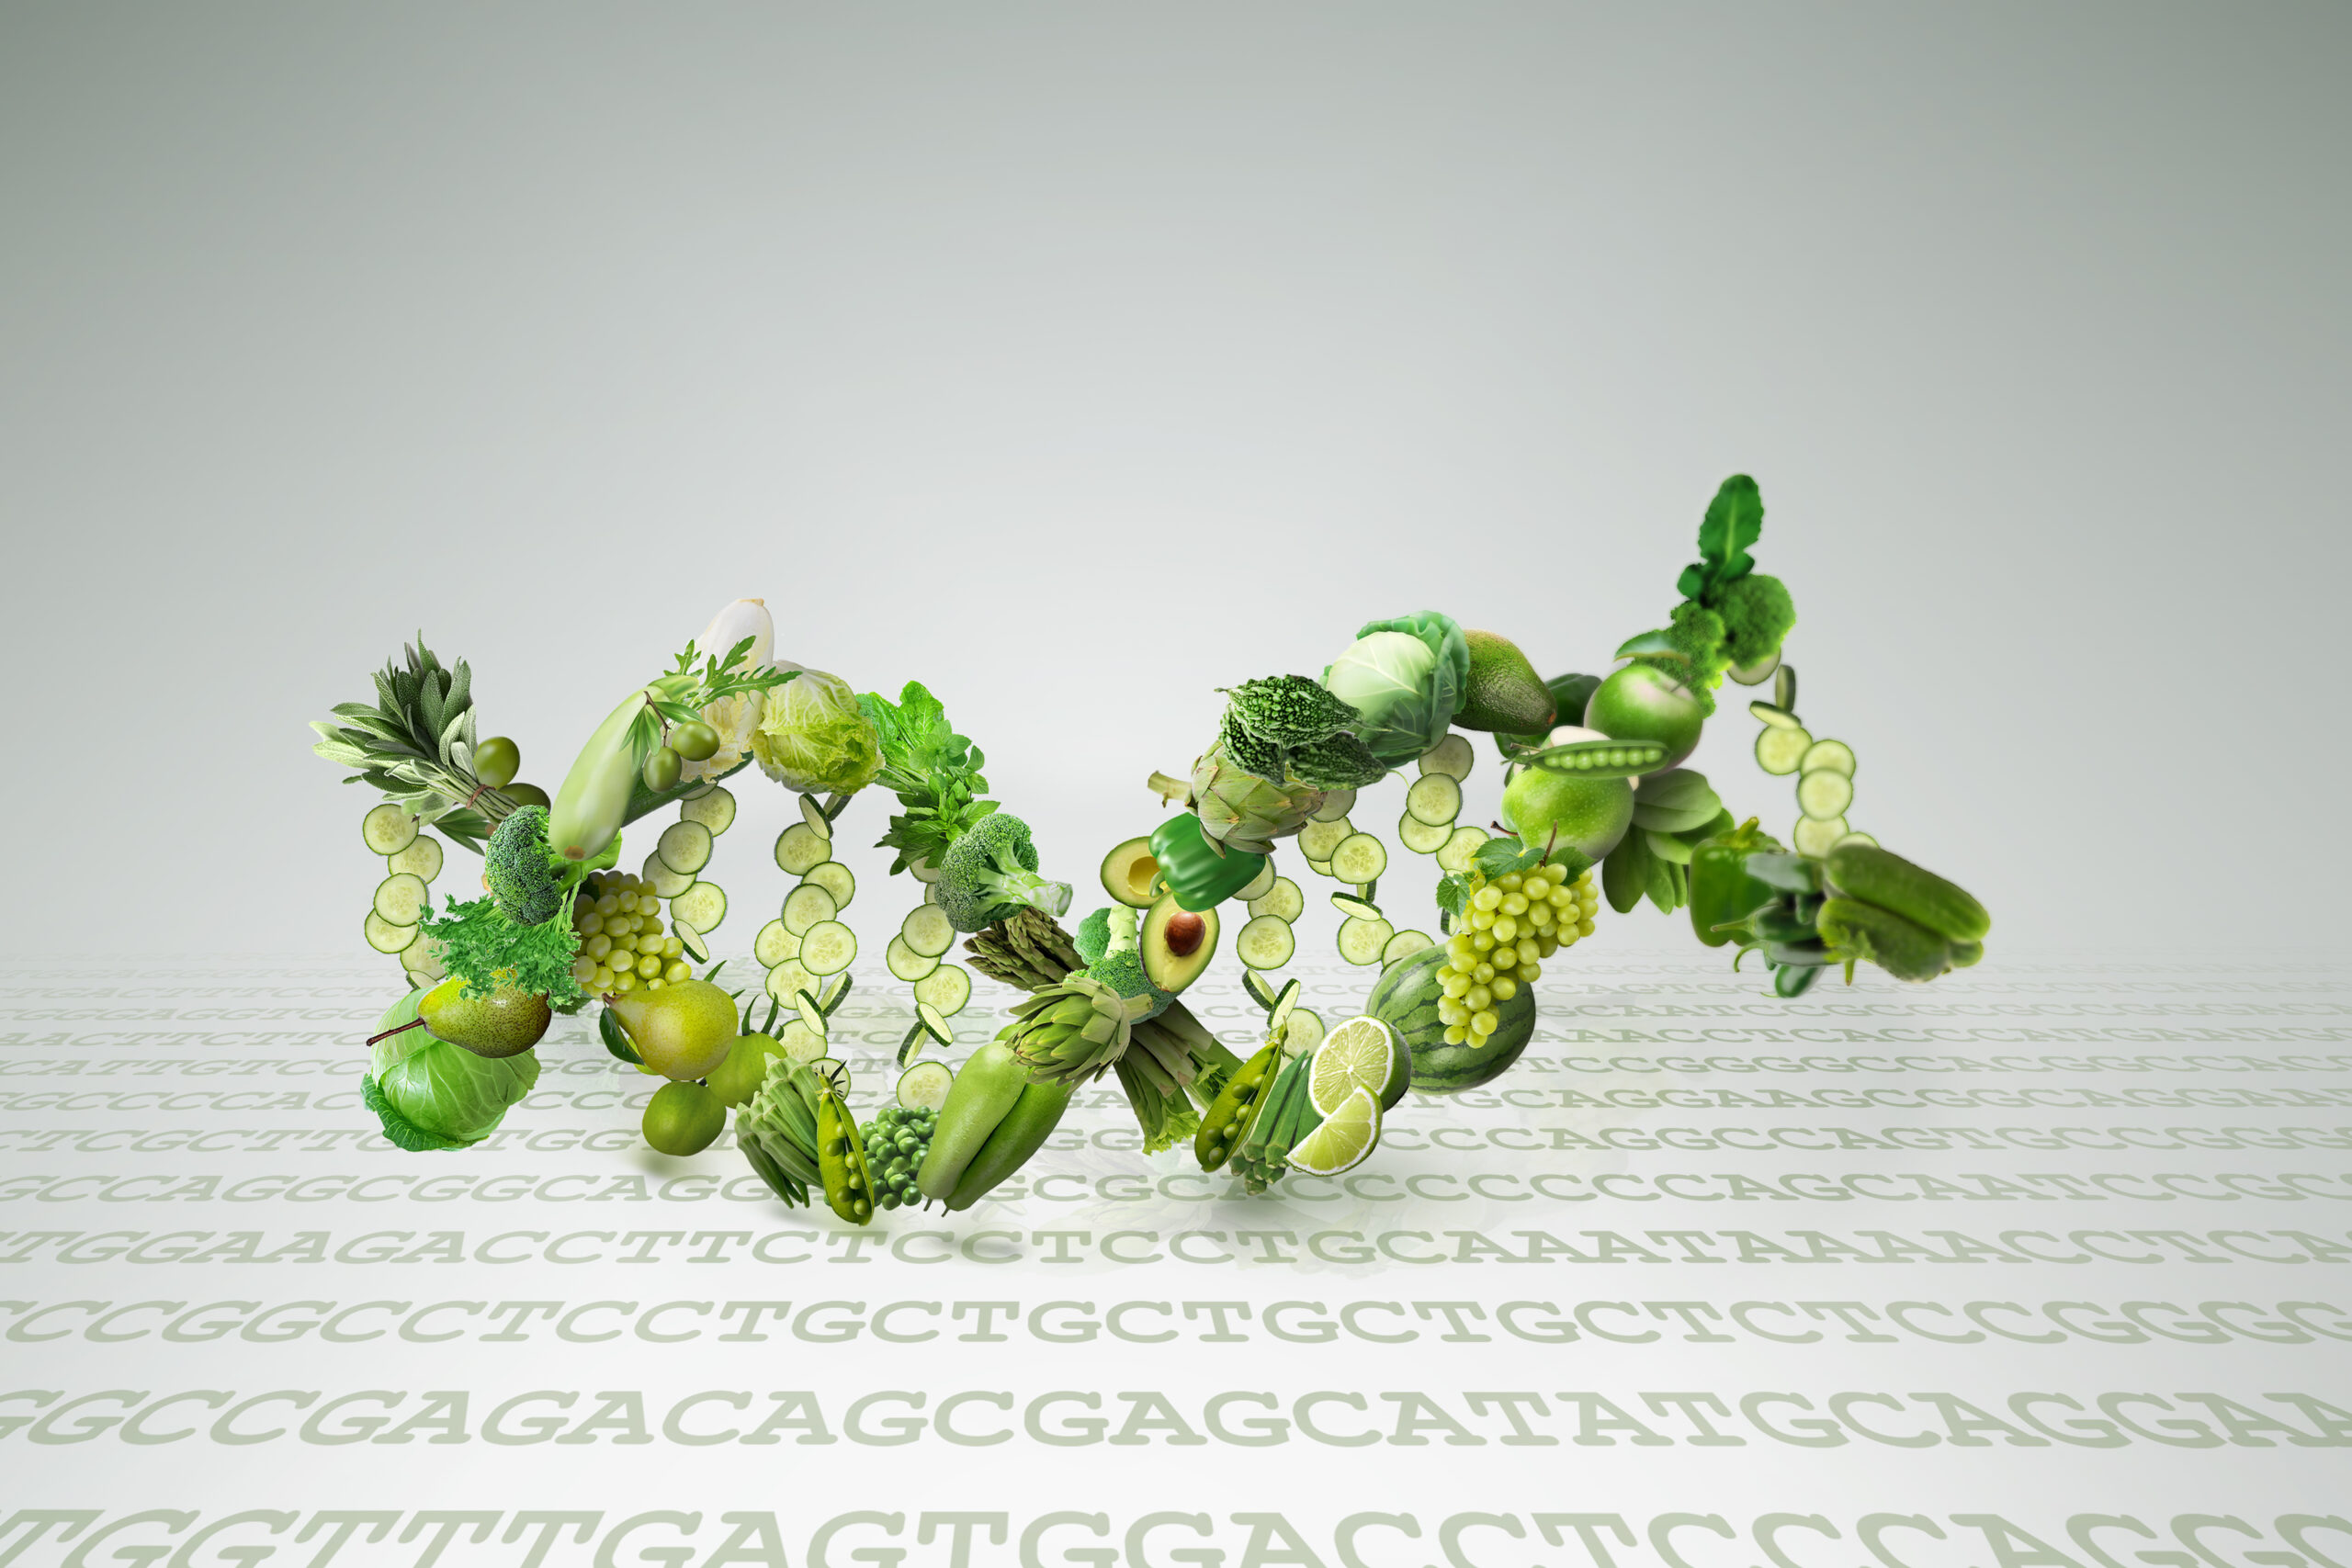 Nutrition Genetics And Nutrigenomics Science Concept Of Dna Helix Made Of Vegetables Refers To Genome Editing